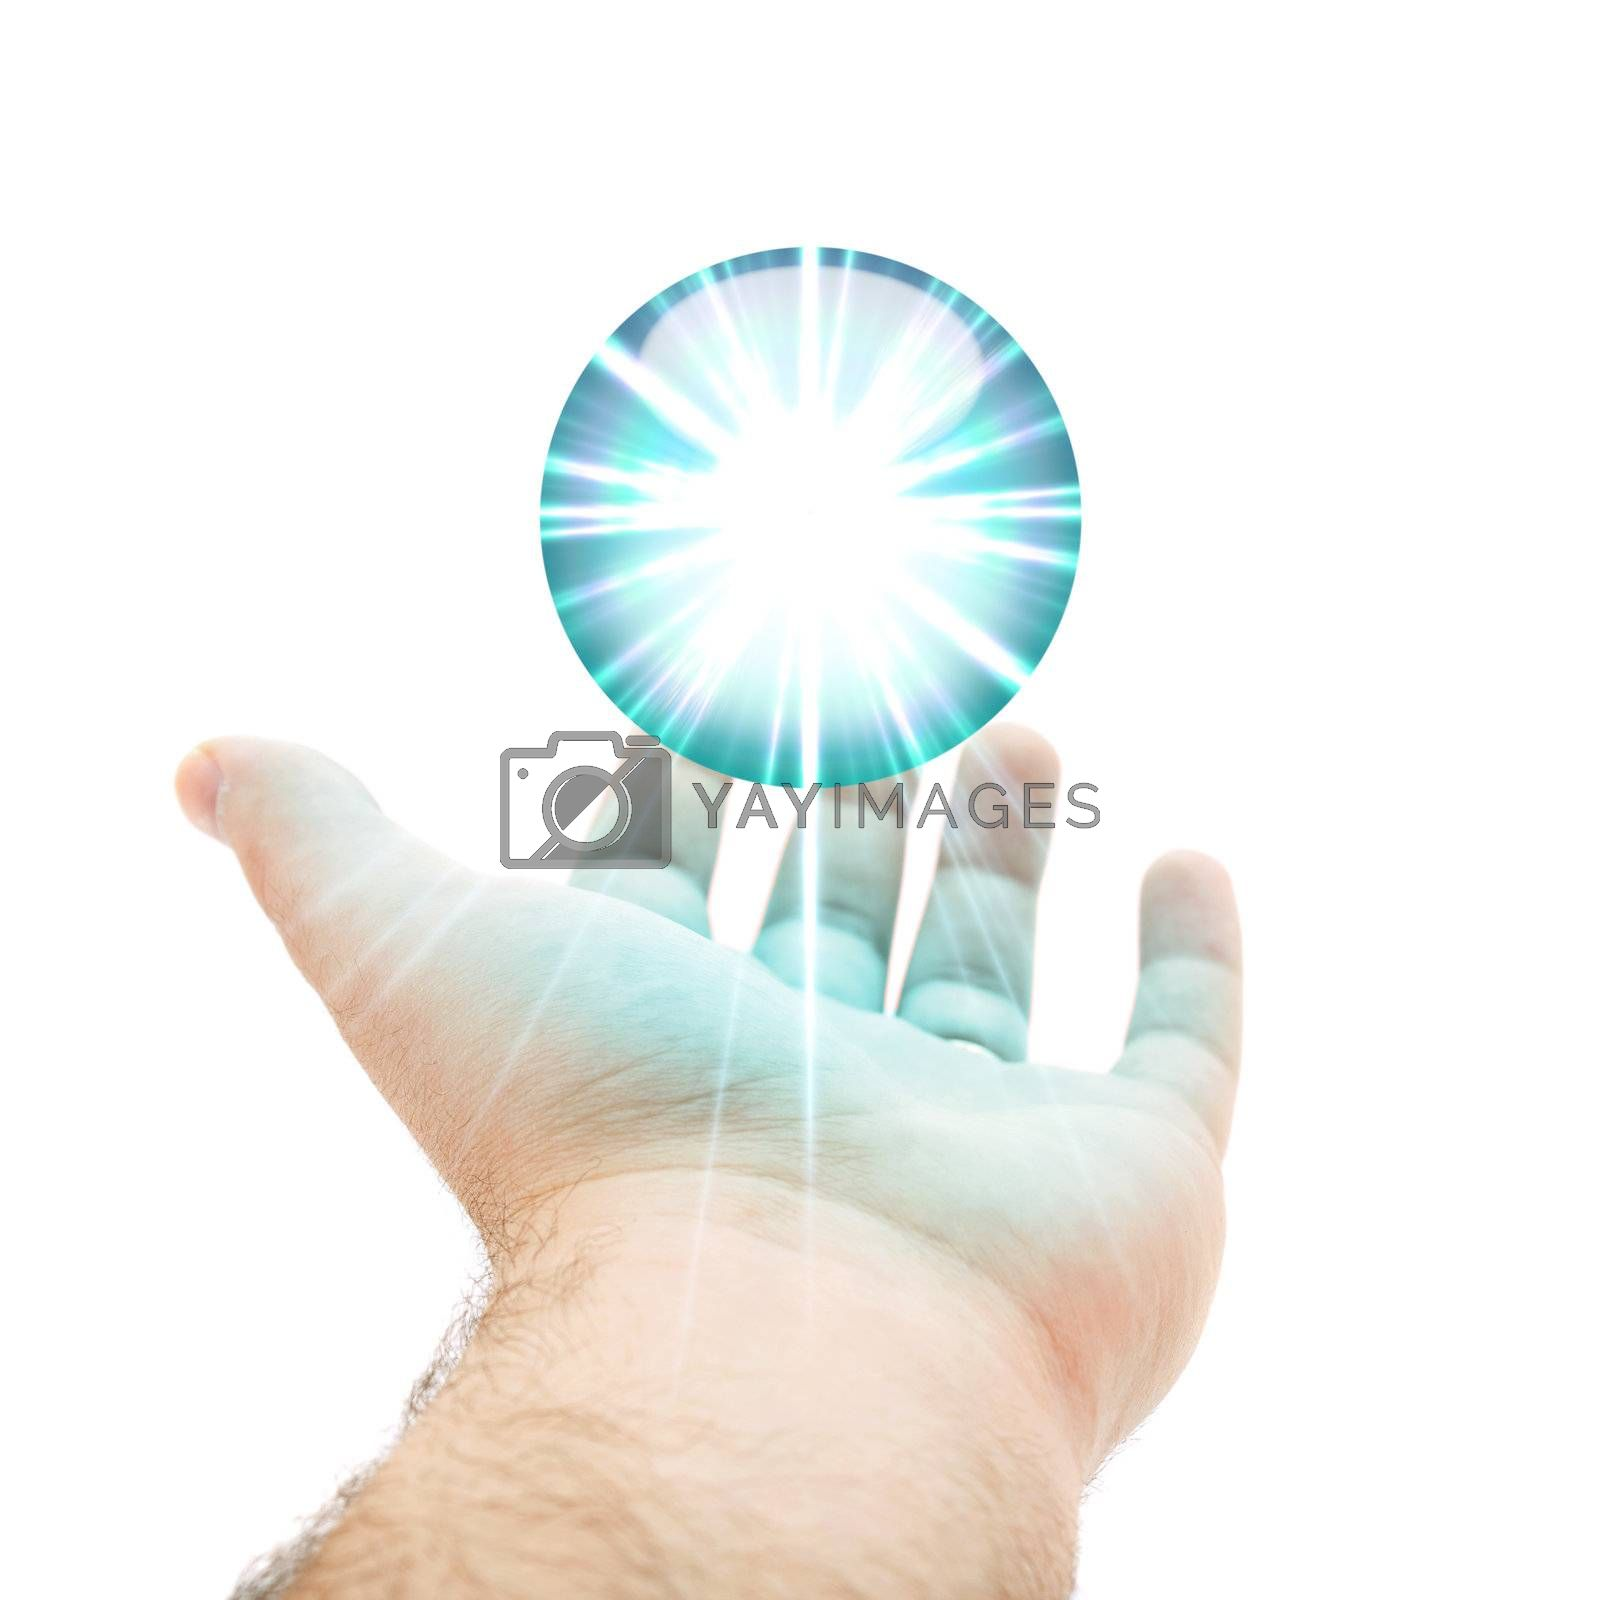 A hand being held out with a blue orb or round button hovering above the palm.